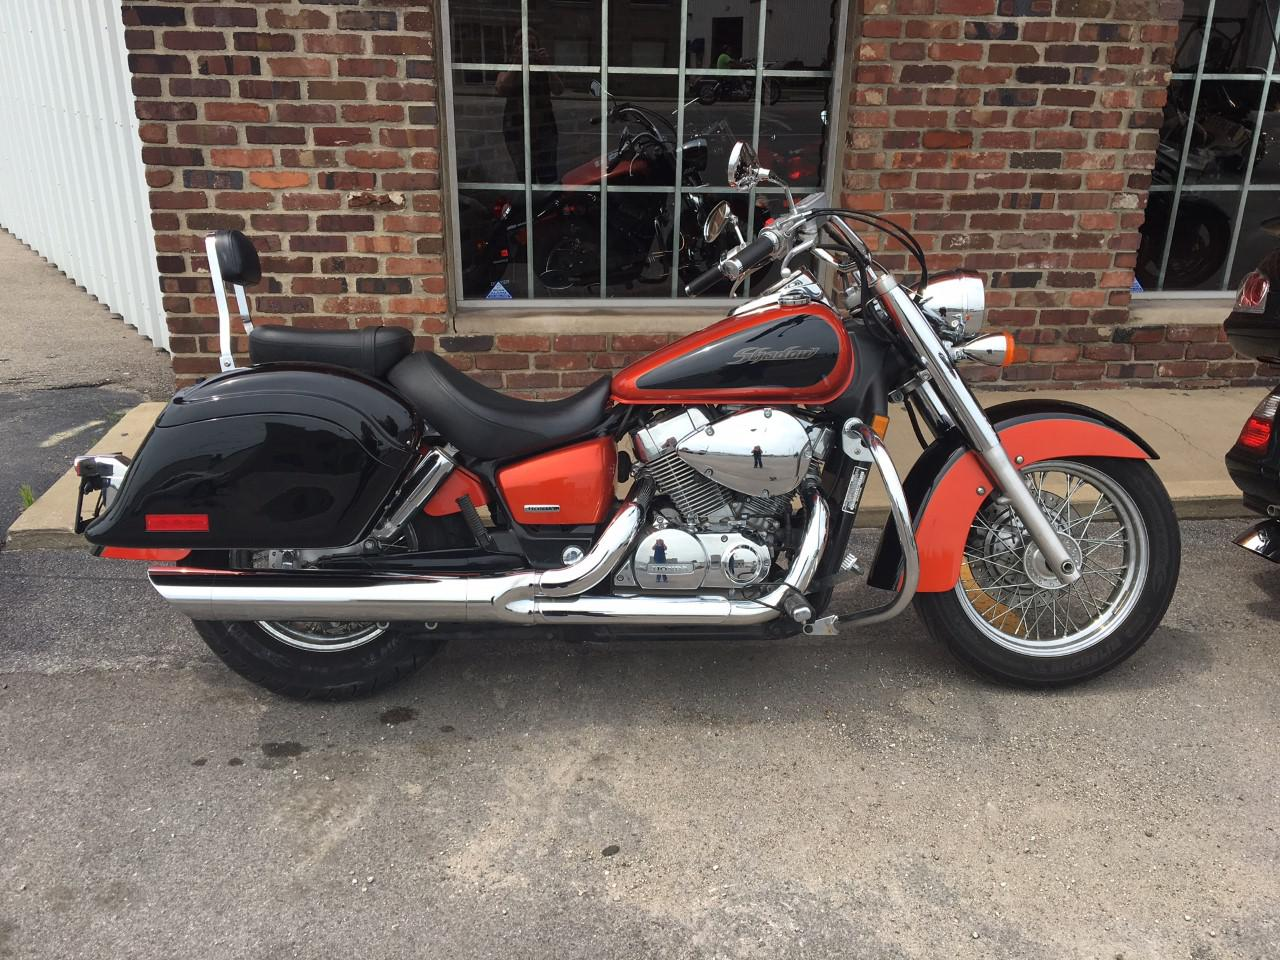 2006 honda shadow aero 750 for sale in indianapolis, in | dreyer